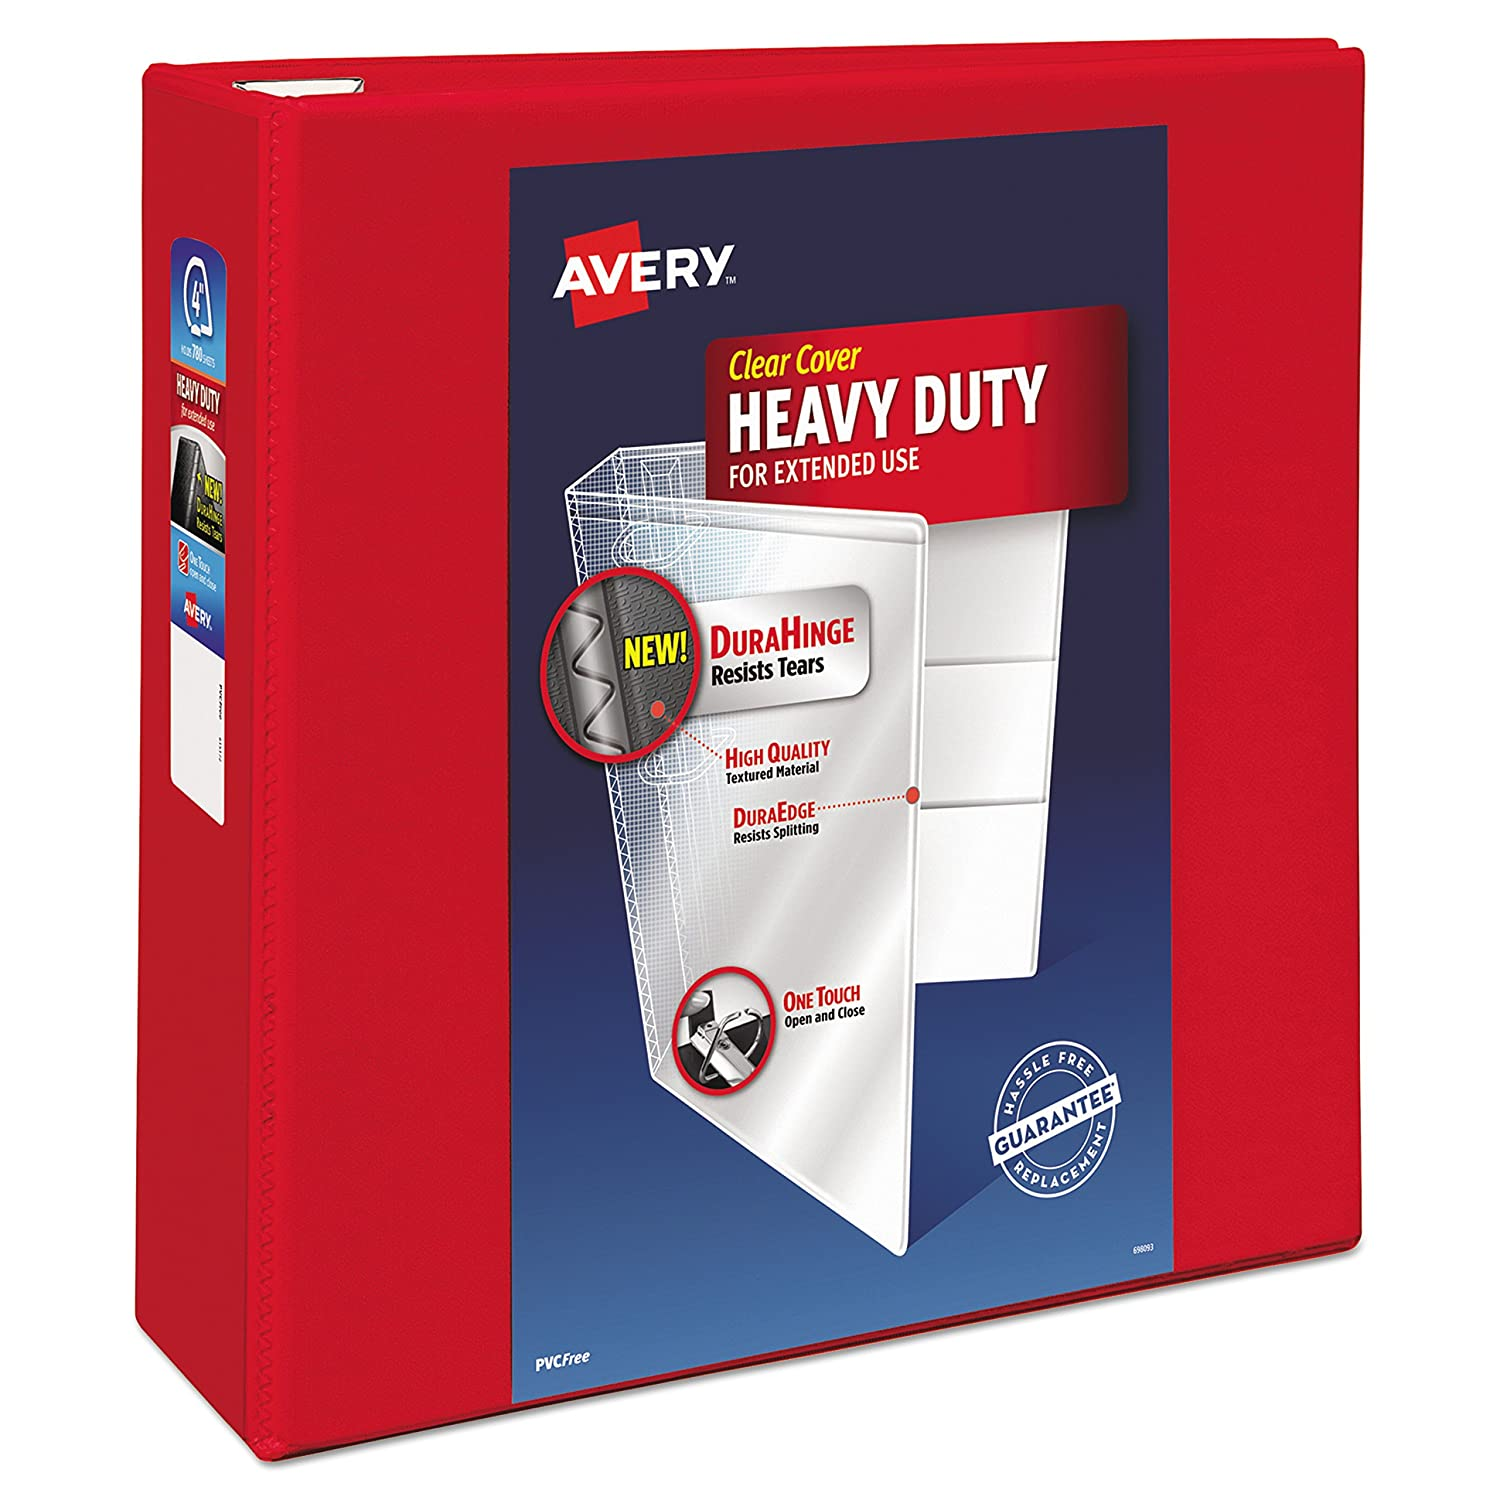 Avery Heavy-Duty View Binder with 3 One Touch EZD Rings, White, Case Pack of 4 (79793) Avery Products Corporation 5007771179793